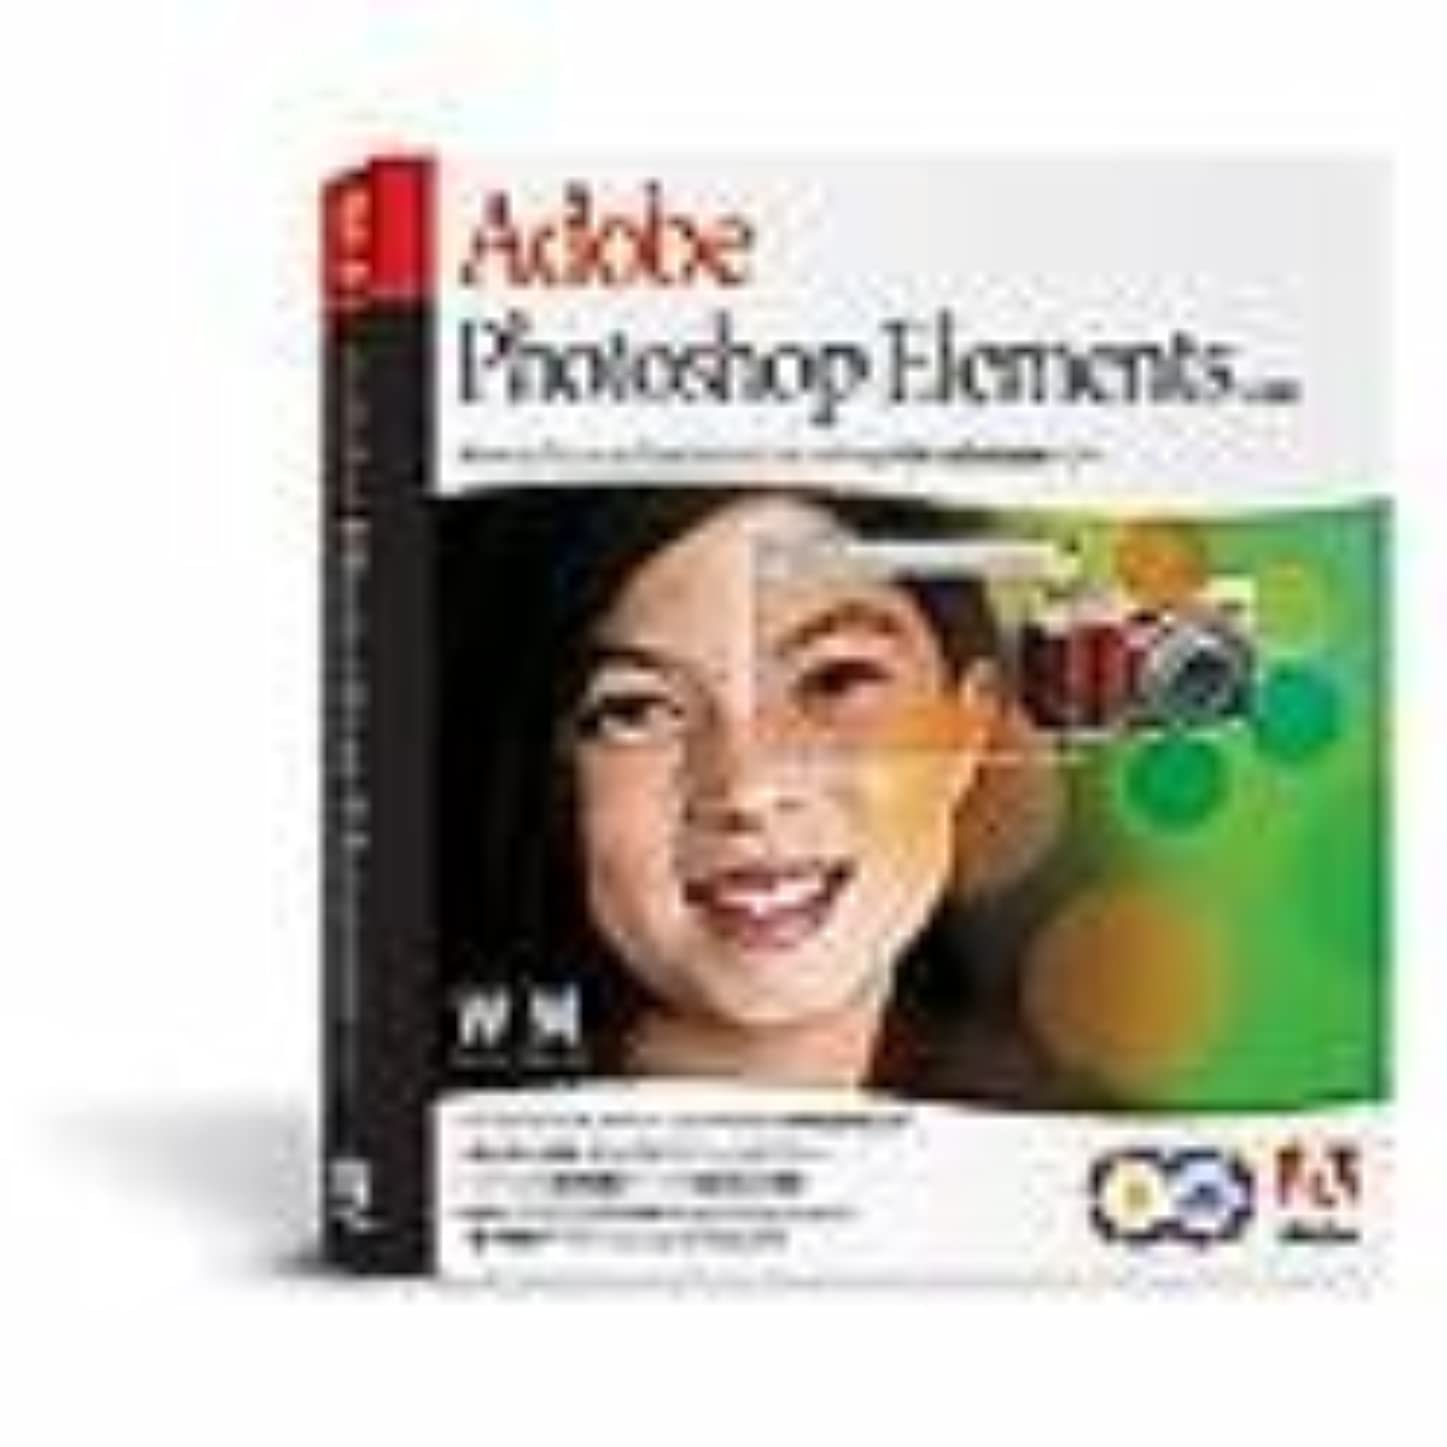 Adobe Photoshop Elements 日本語版